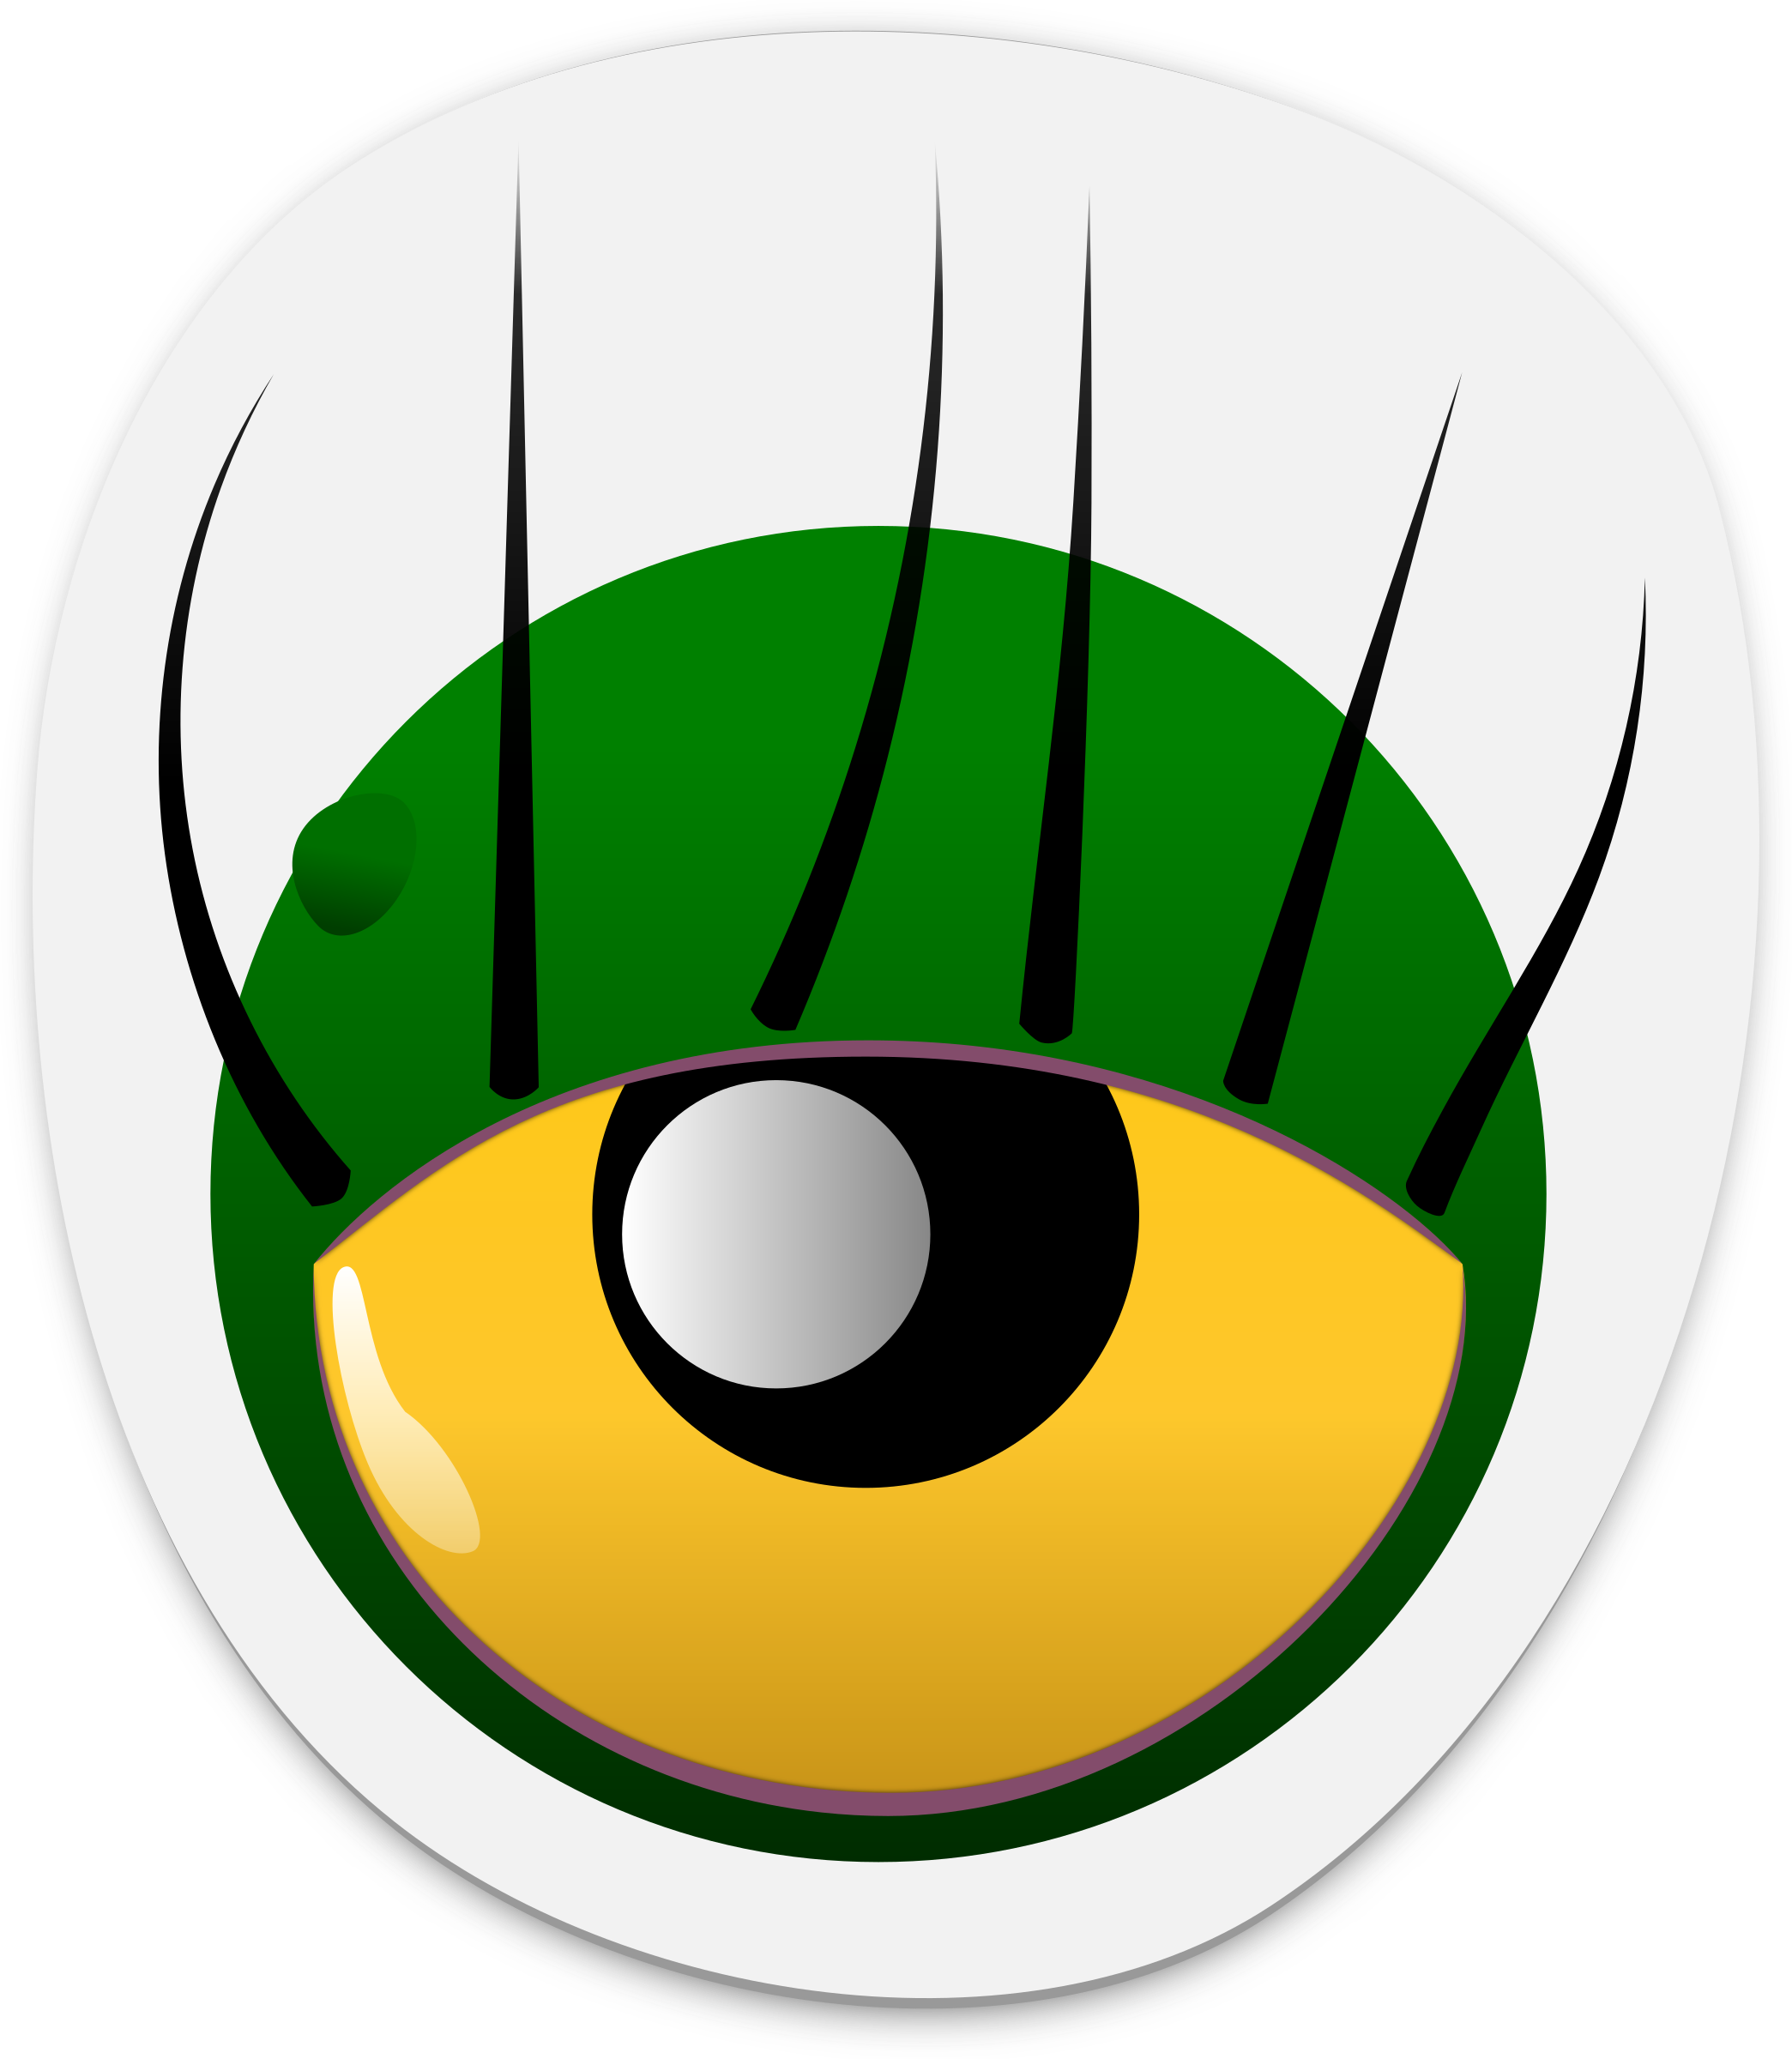 monster eye sticker 2 by dogface_jim